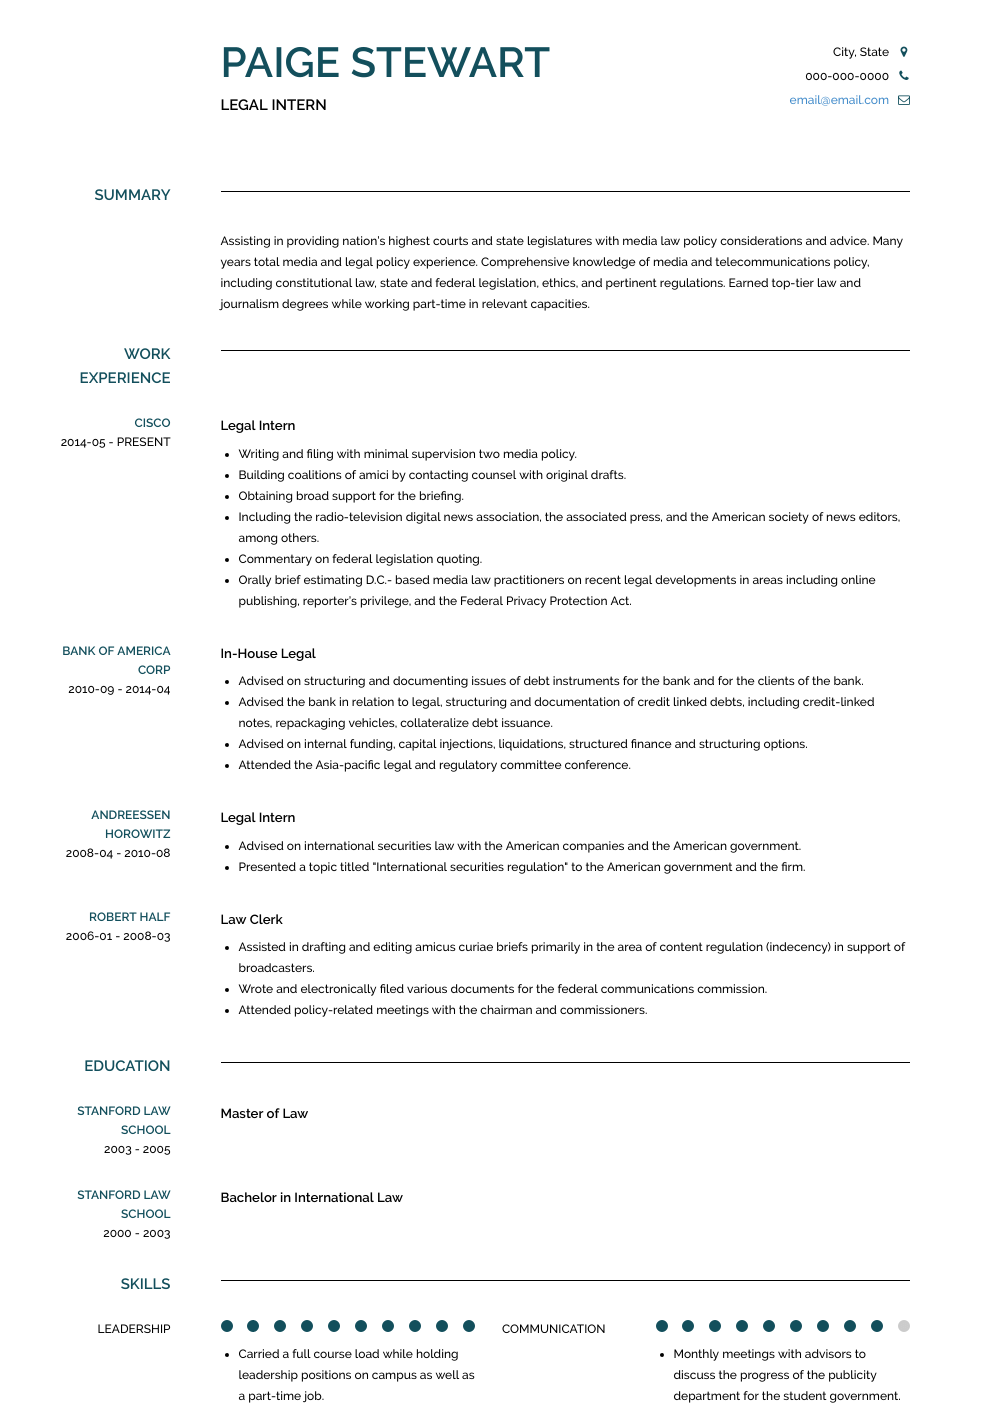 Legal Intern Resume Sample Resume, Marketing jobs, Work